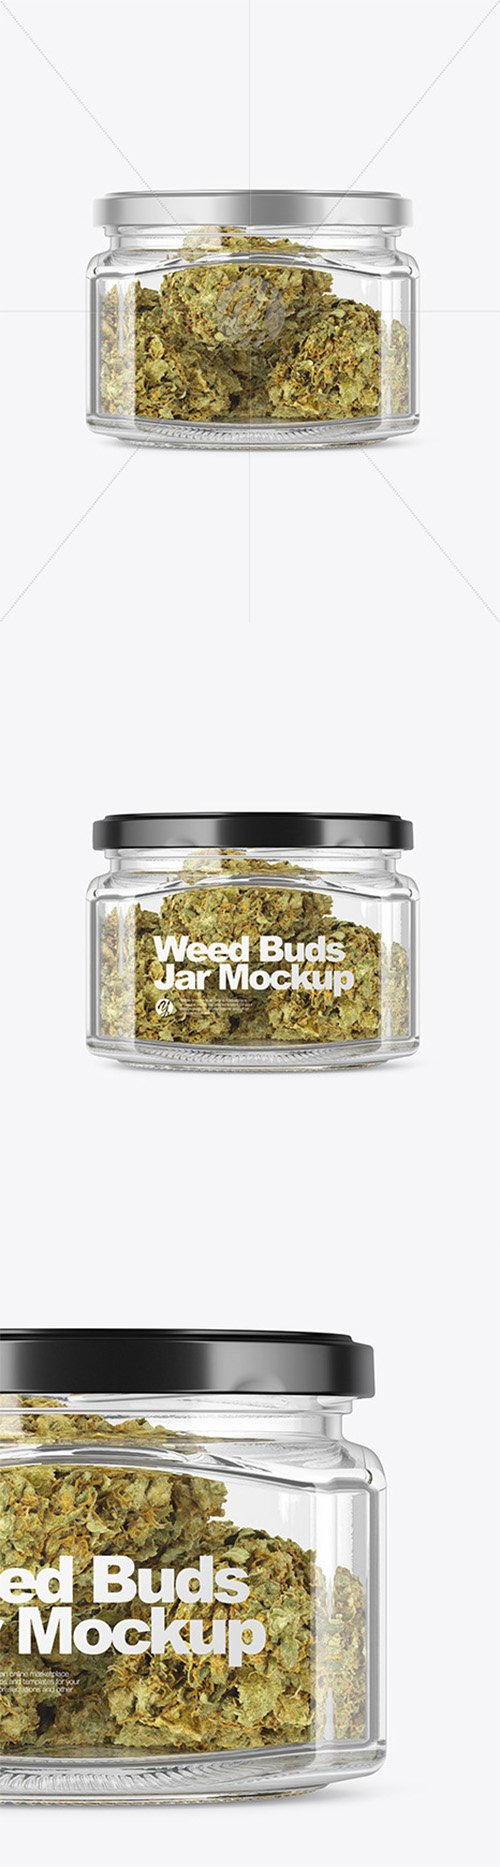 Square Glass Jar with Weed Buds Mockup 52415 TIF